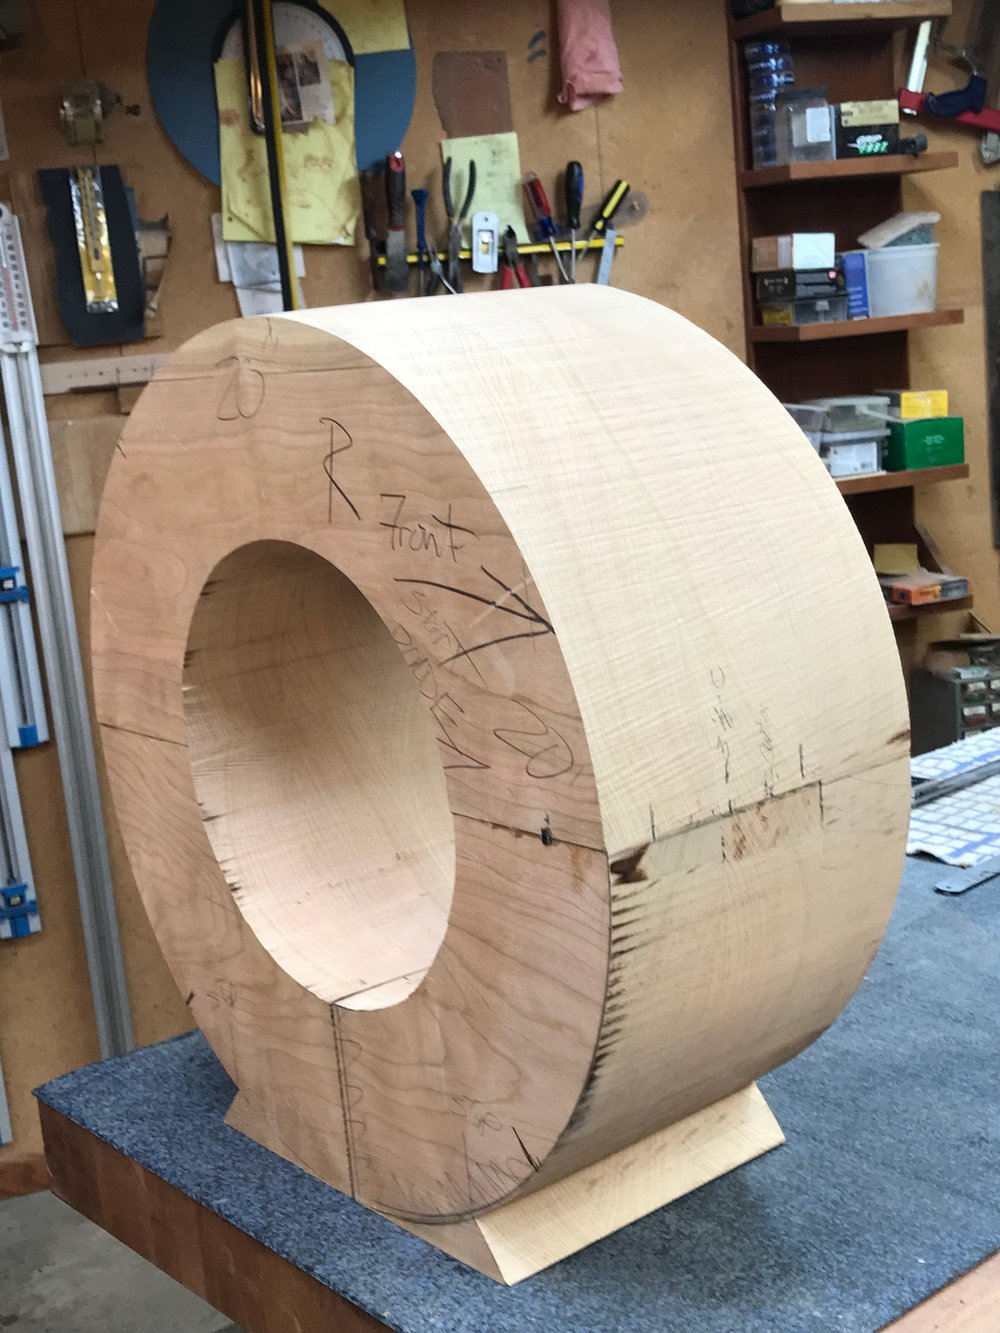 After opening a kerf line at the base to the center, I circle cut the center and removed it.